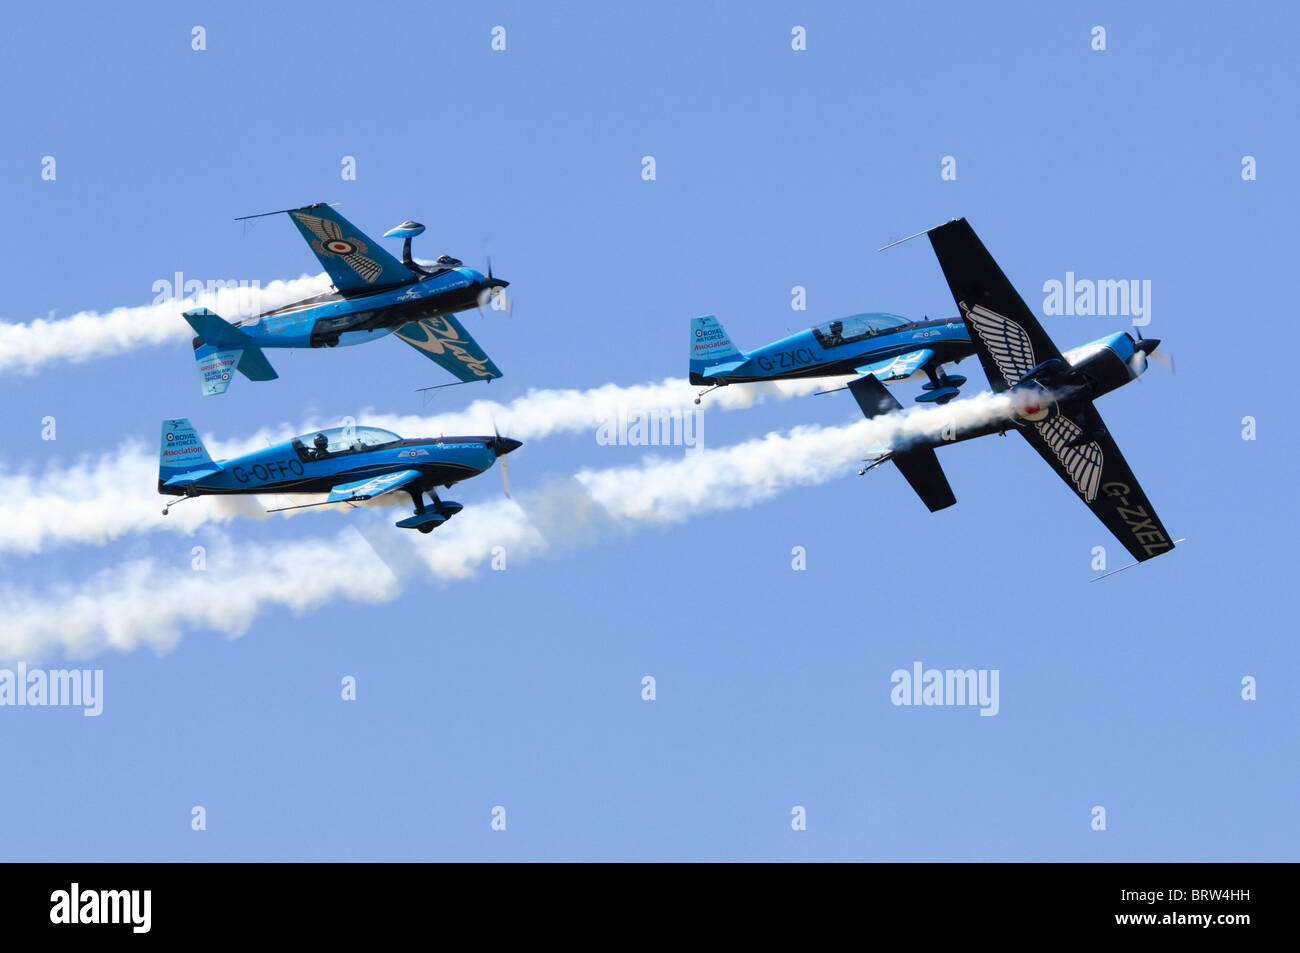 The Blades display team making a formation flypast at Farnborough Airshow - Stock Image